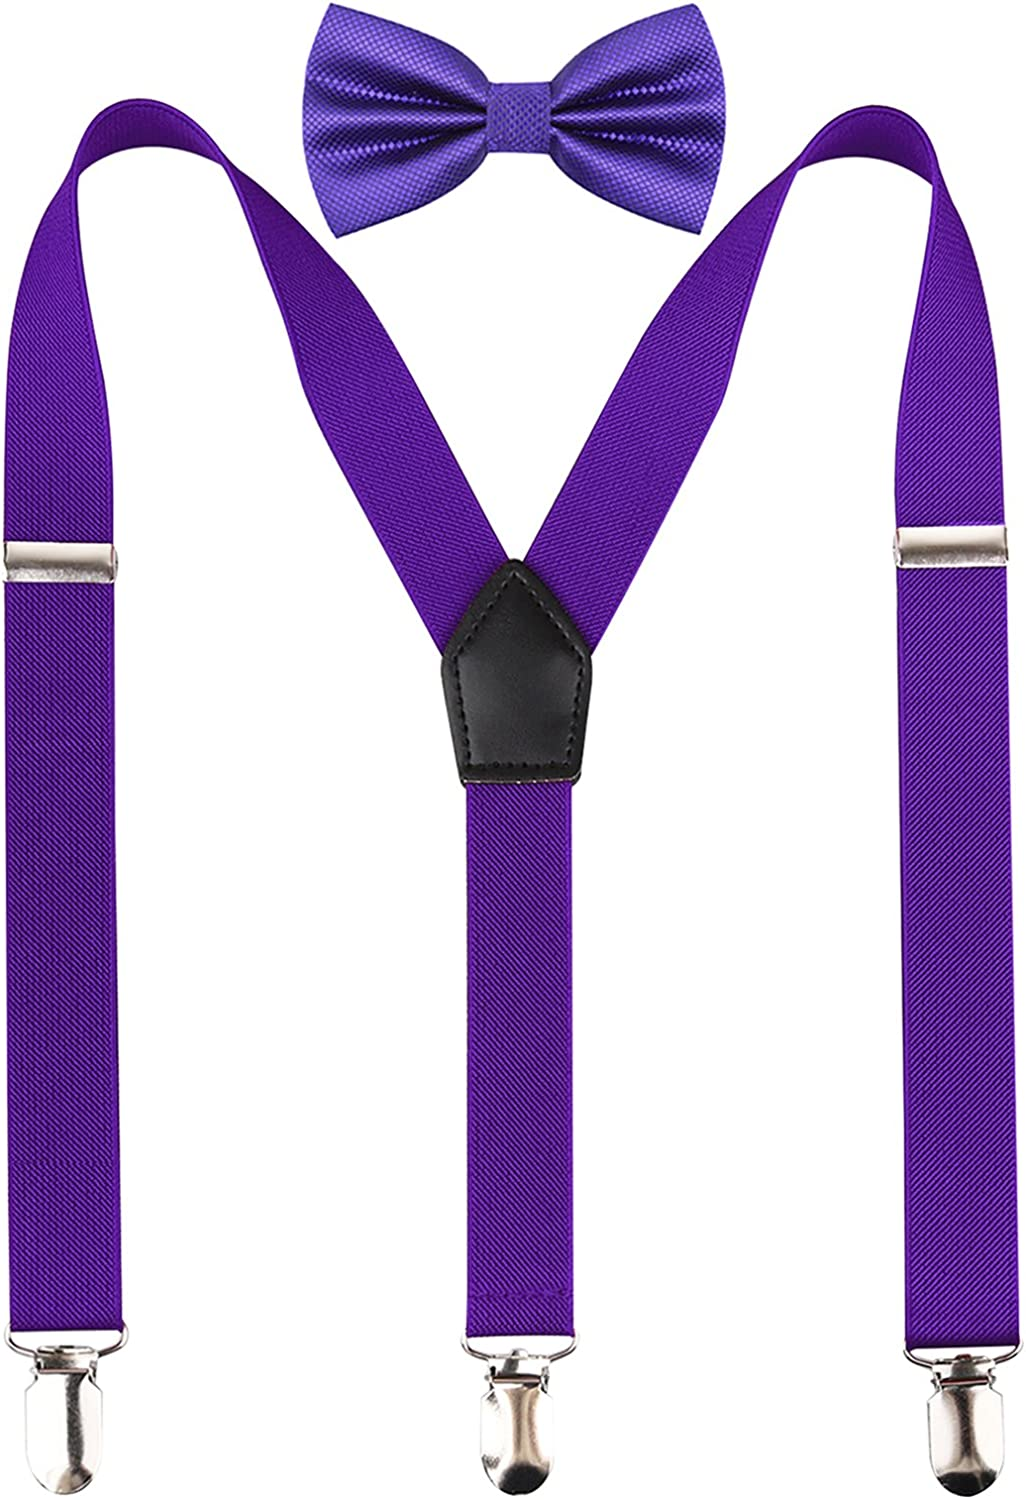 Alizeal 2.5CM Unisex's 3-Clip Suspender and Bow Tie Sets